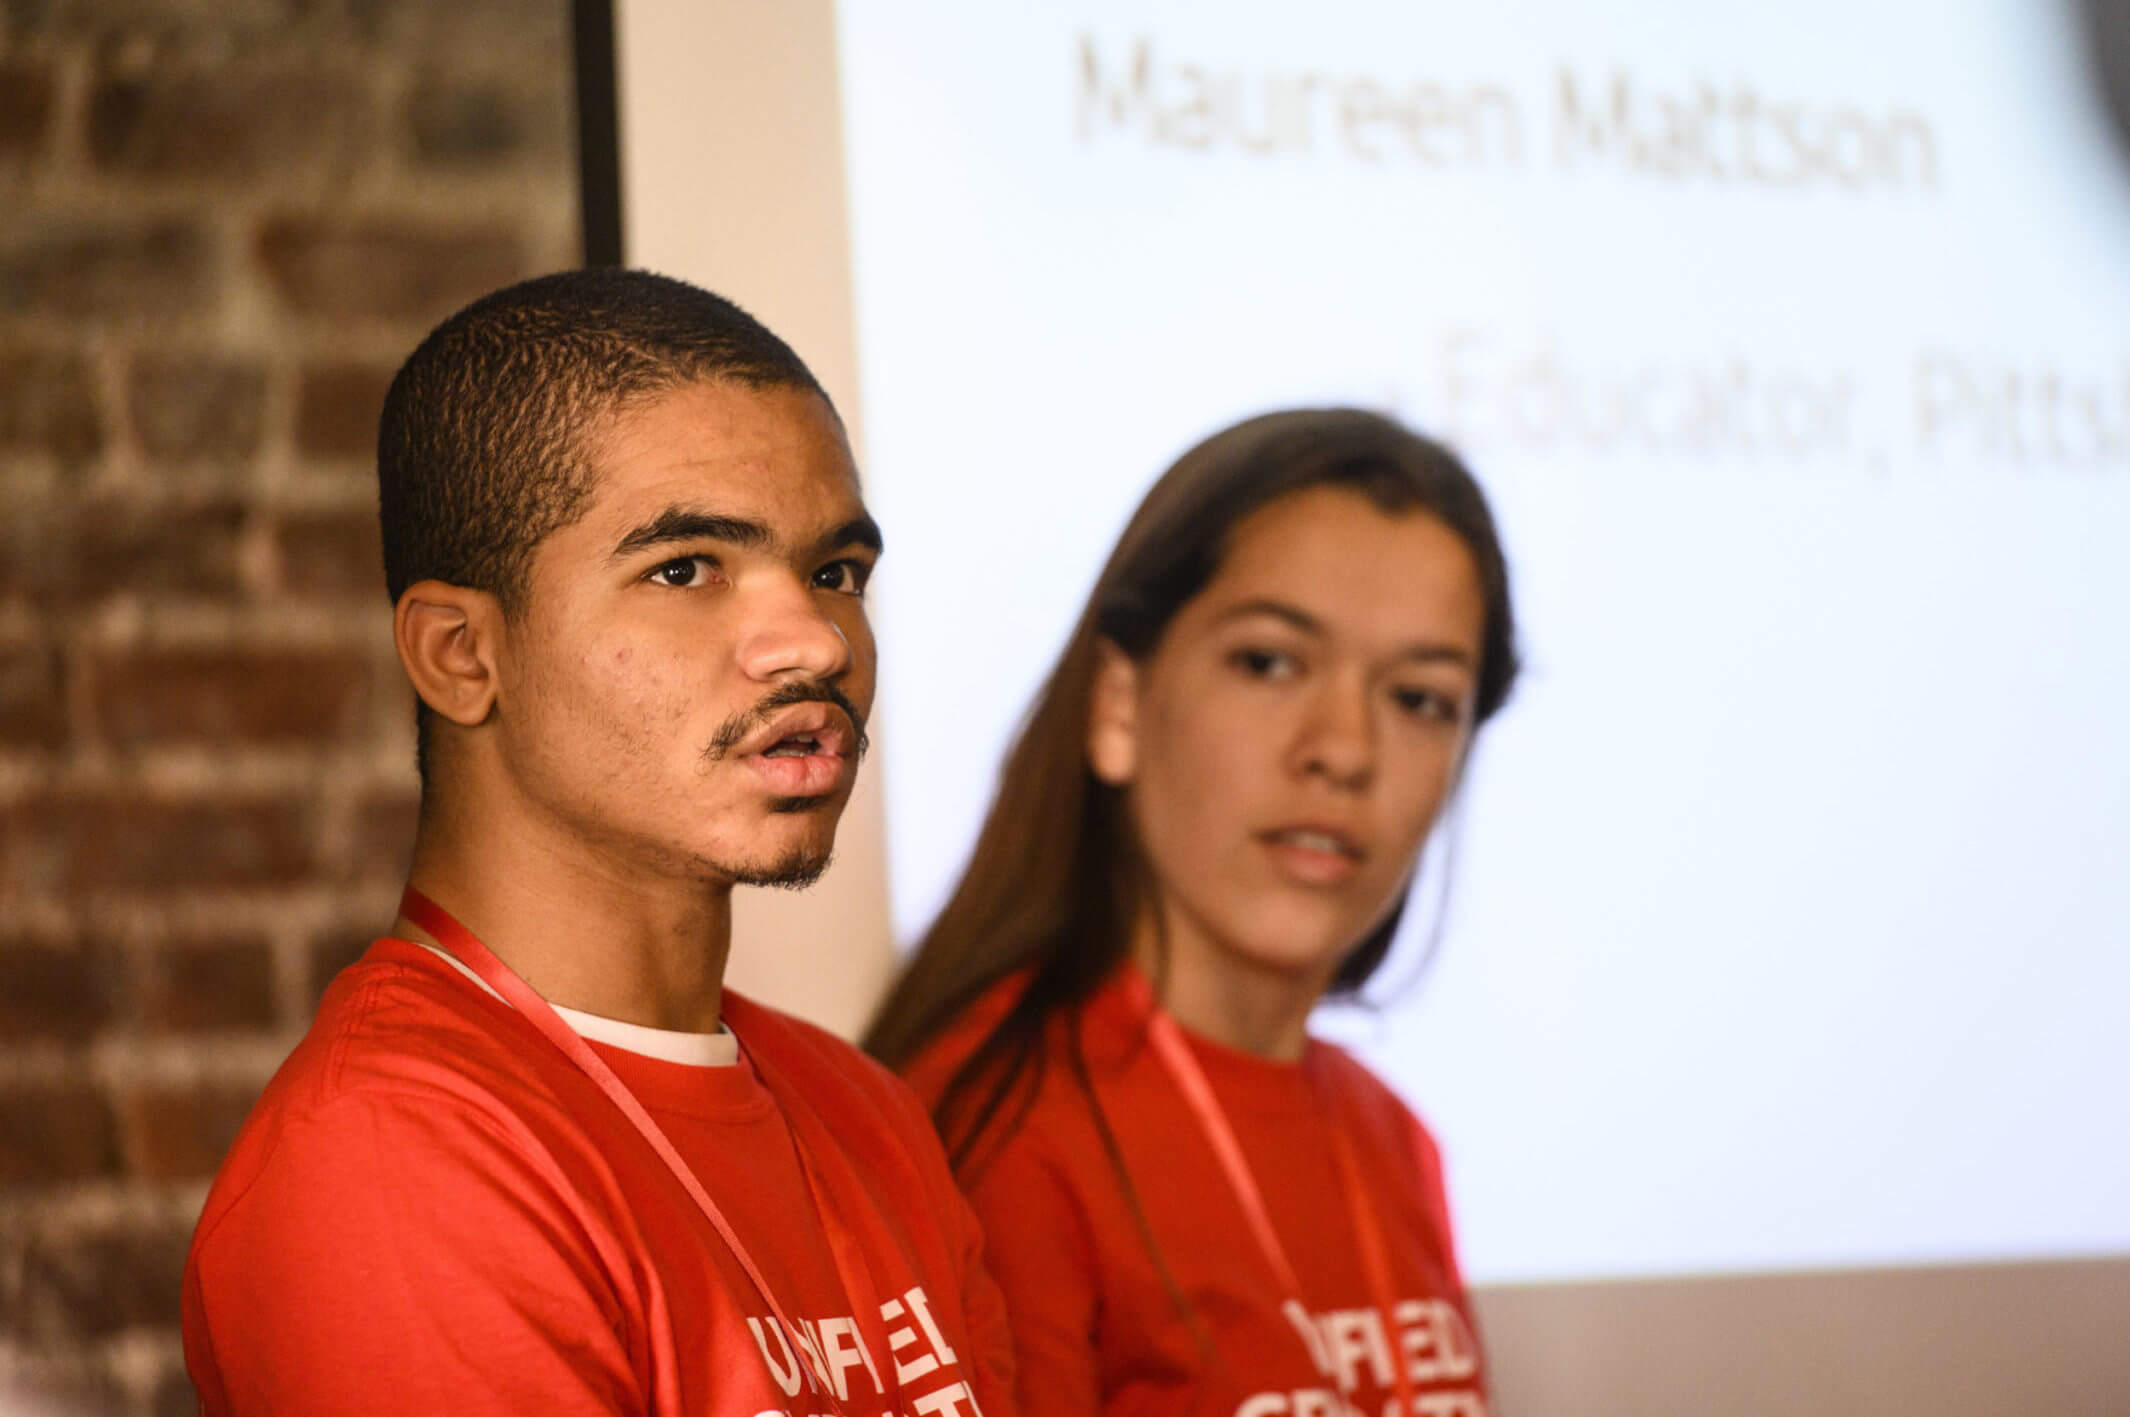 U.S. Youth Ambassadors Troy and Citlali lead a discussion.